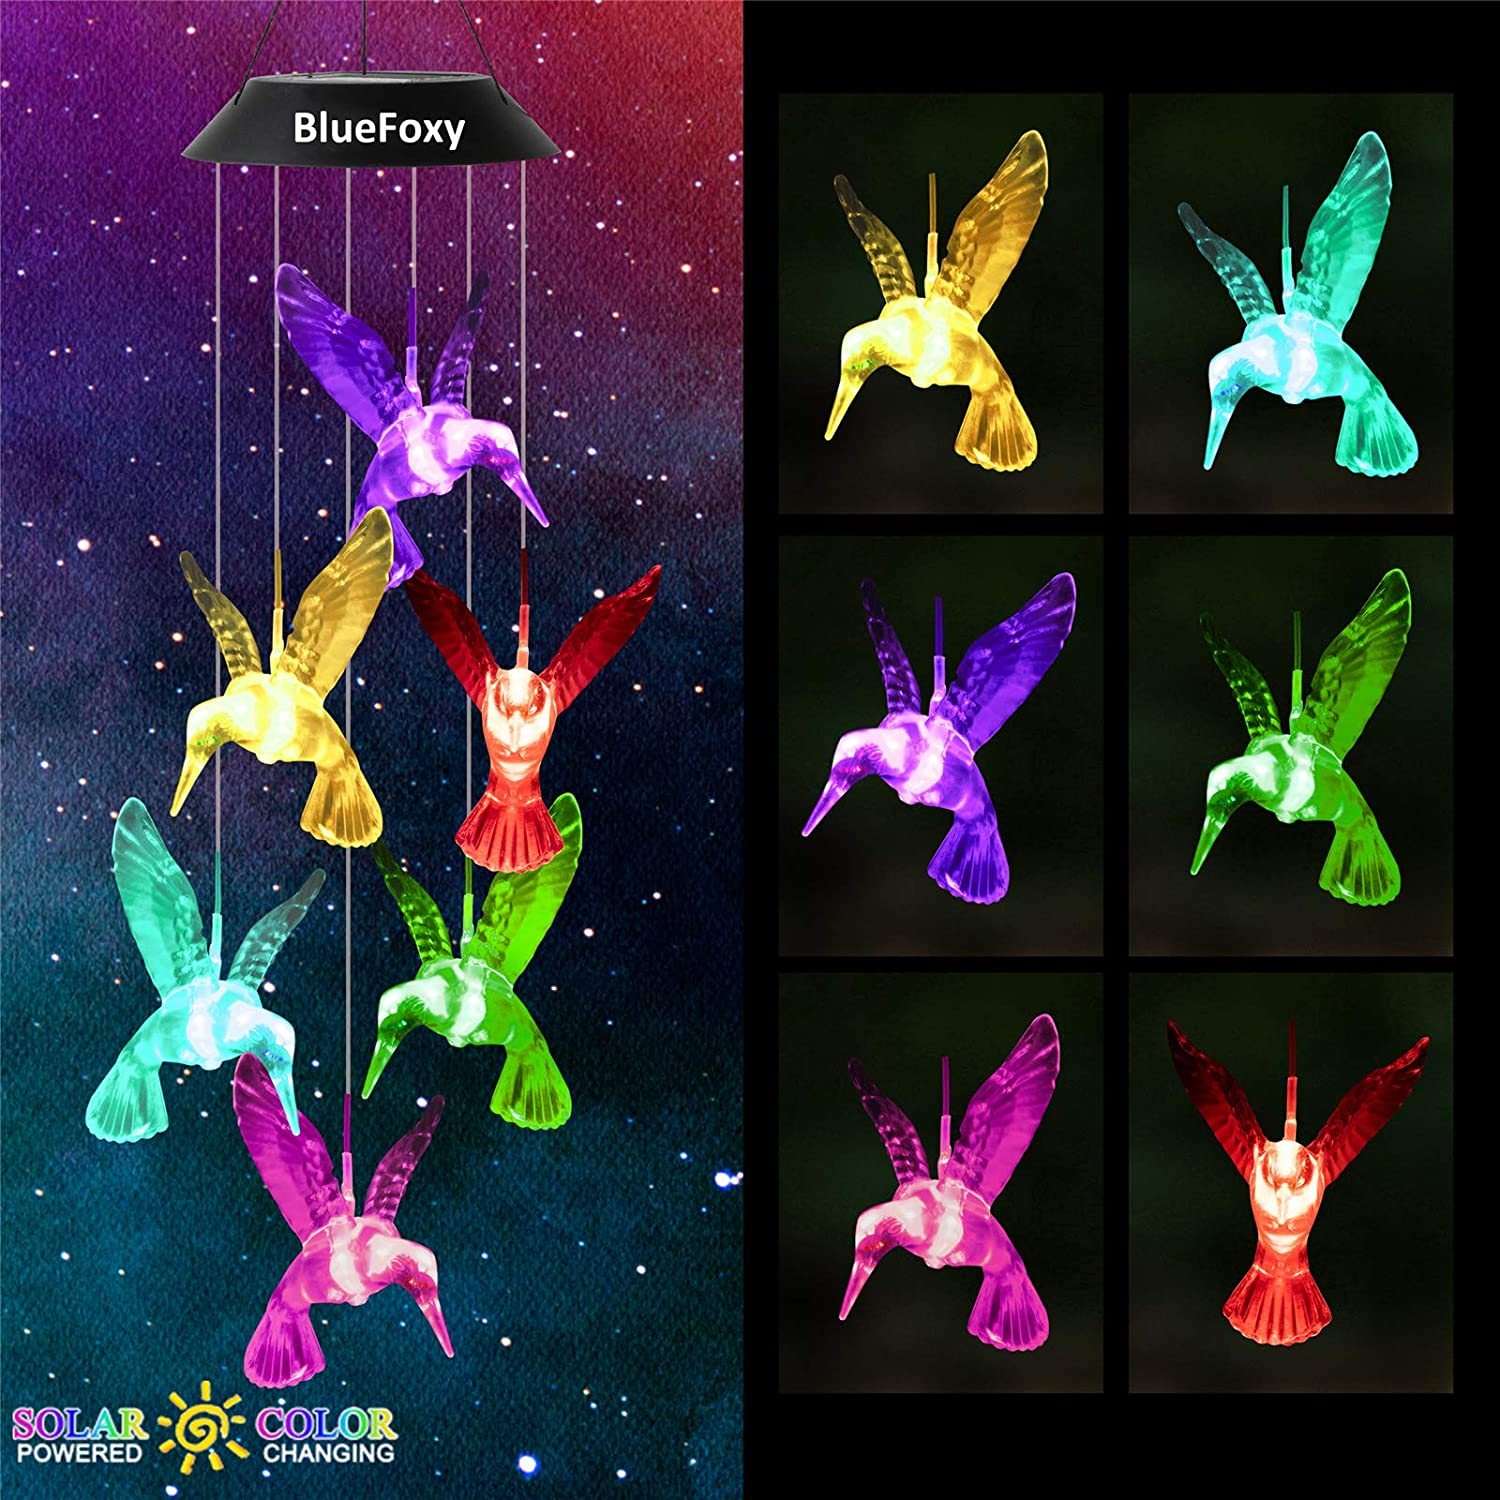 BlueFoxy LED Solar Wind Chime Green Hummingbird Color Changing Waterproof Wind Chimes Light Solar Mobile Hanging Patio String Lights for Home Party Garden Decor Gifts for Mom